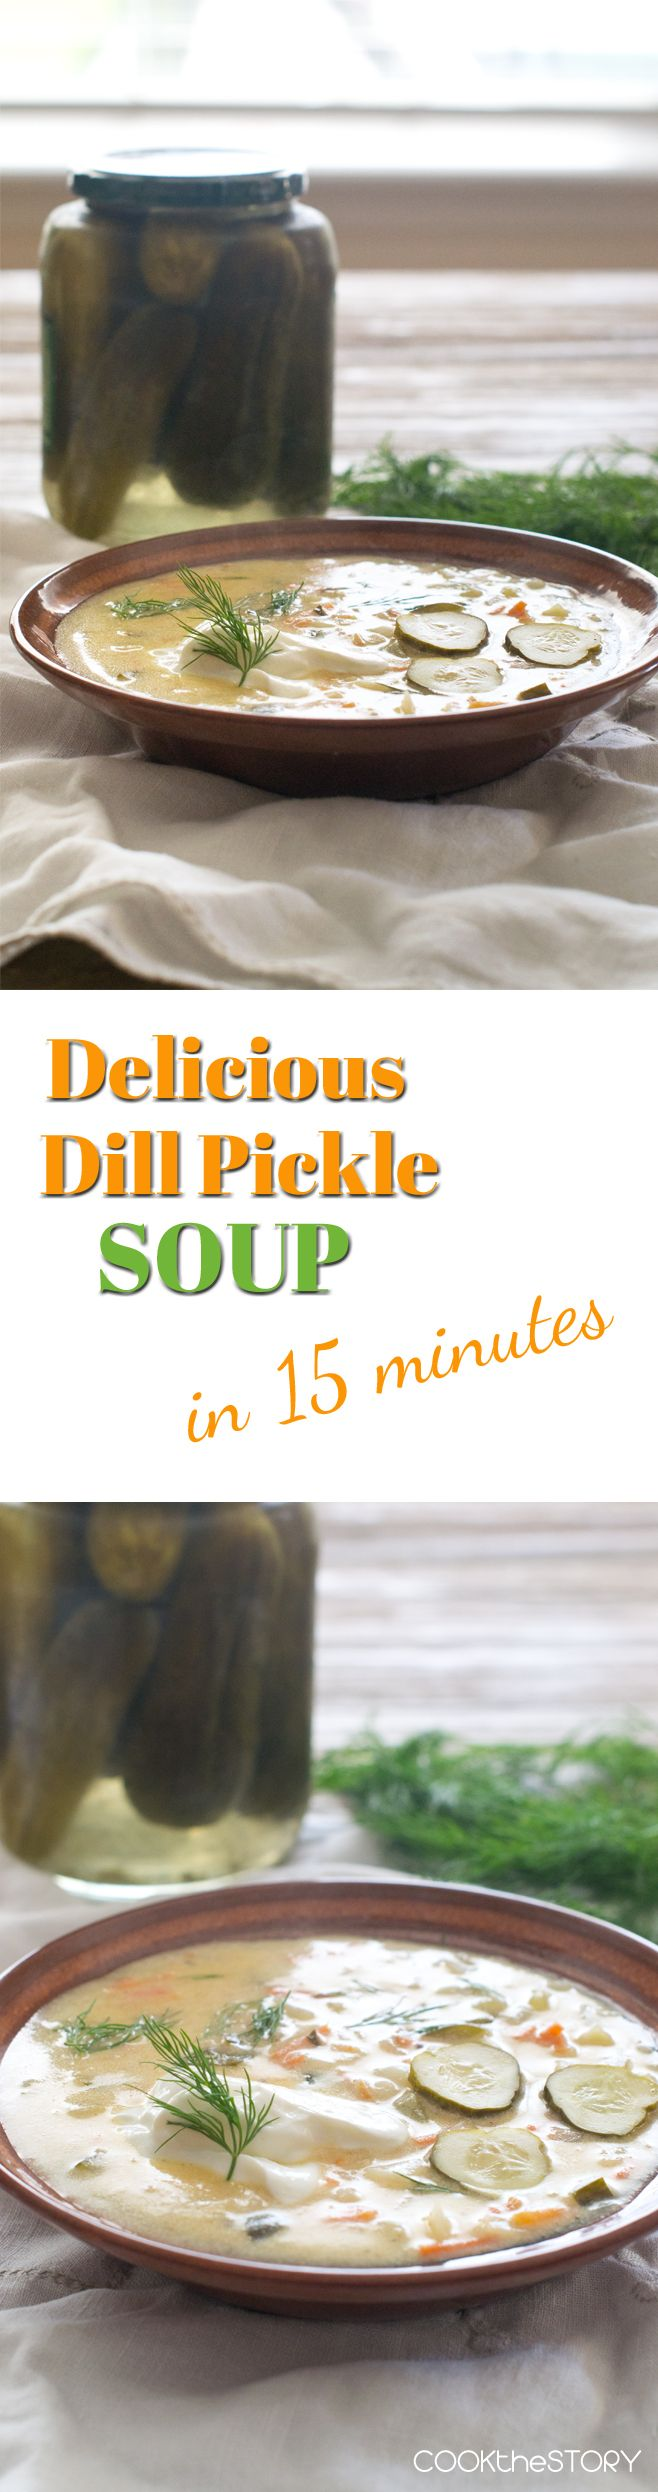 Delicious Dill Pickle Soup in 15 Minutes